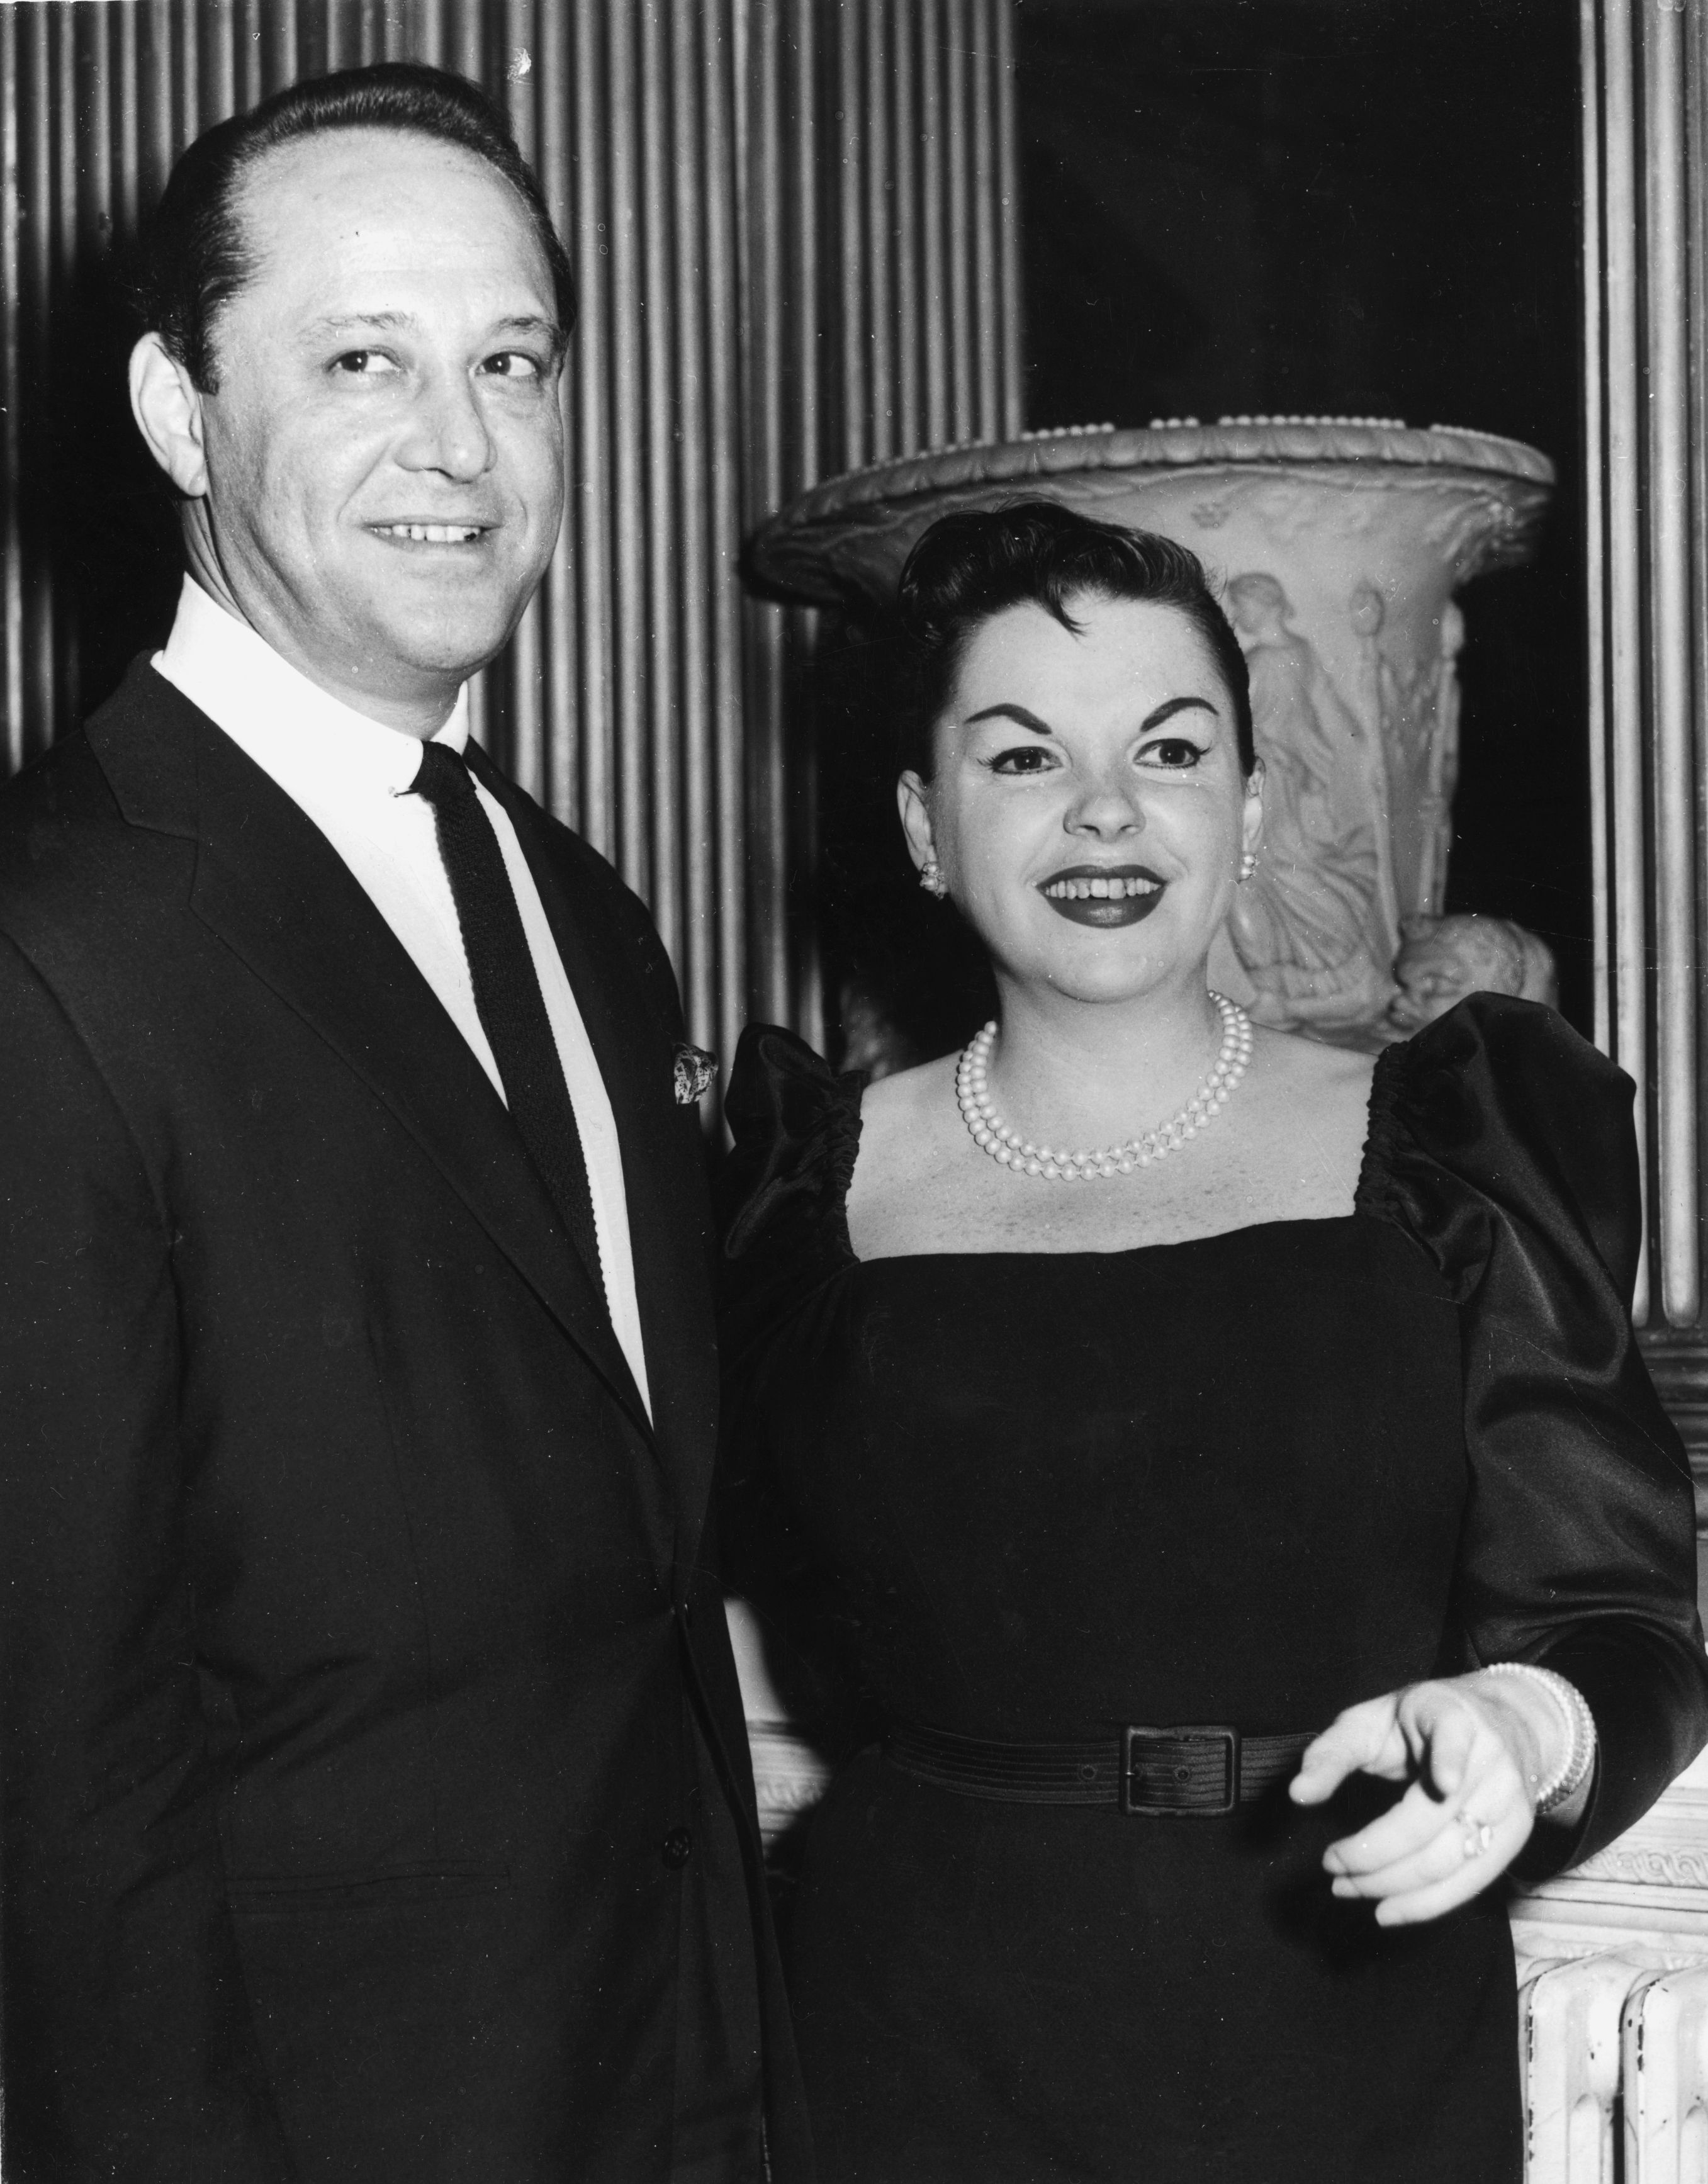 Judy Garland with her husband Sidney Luft at a reception in her honour at Londonderry House. | Source: Getty Images